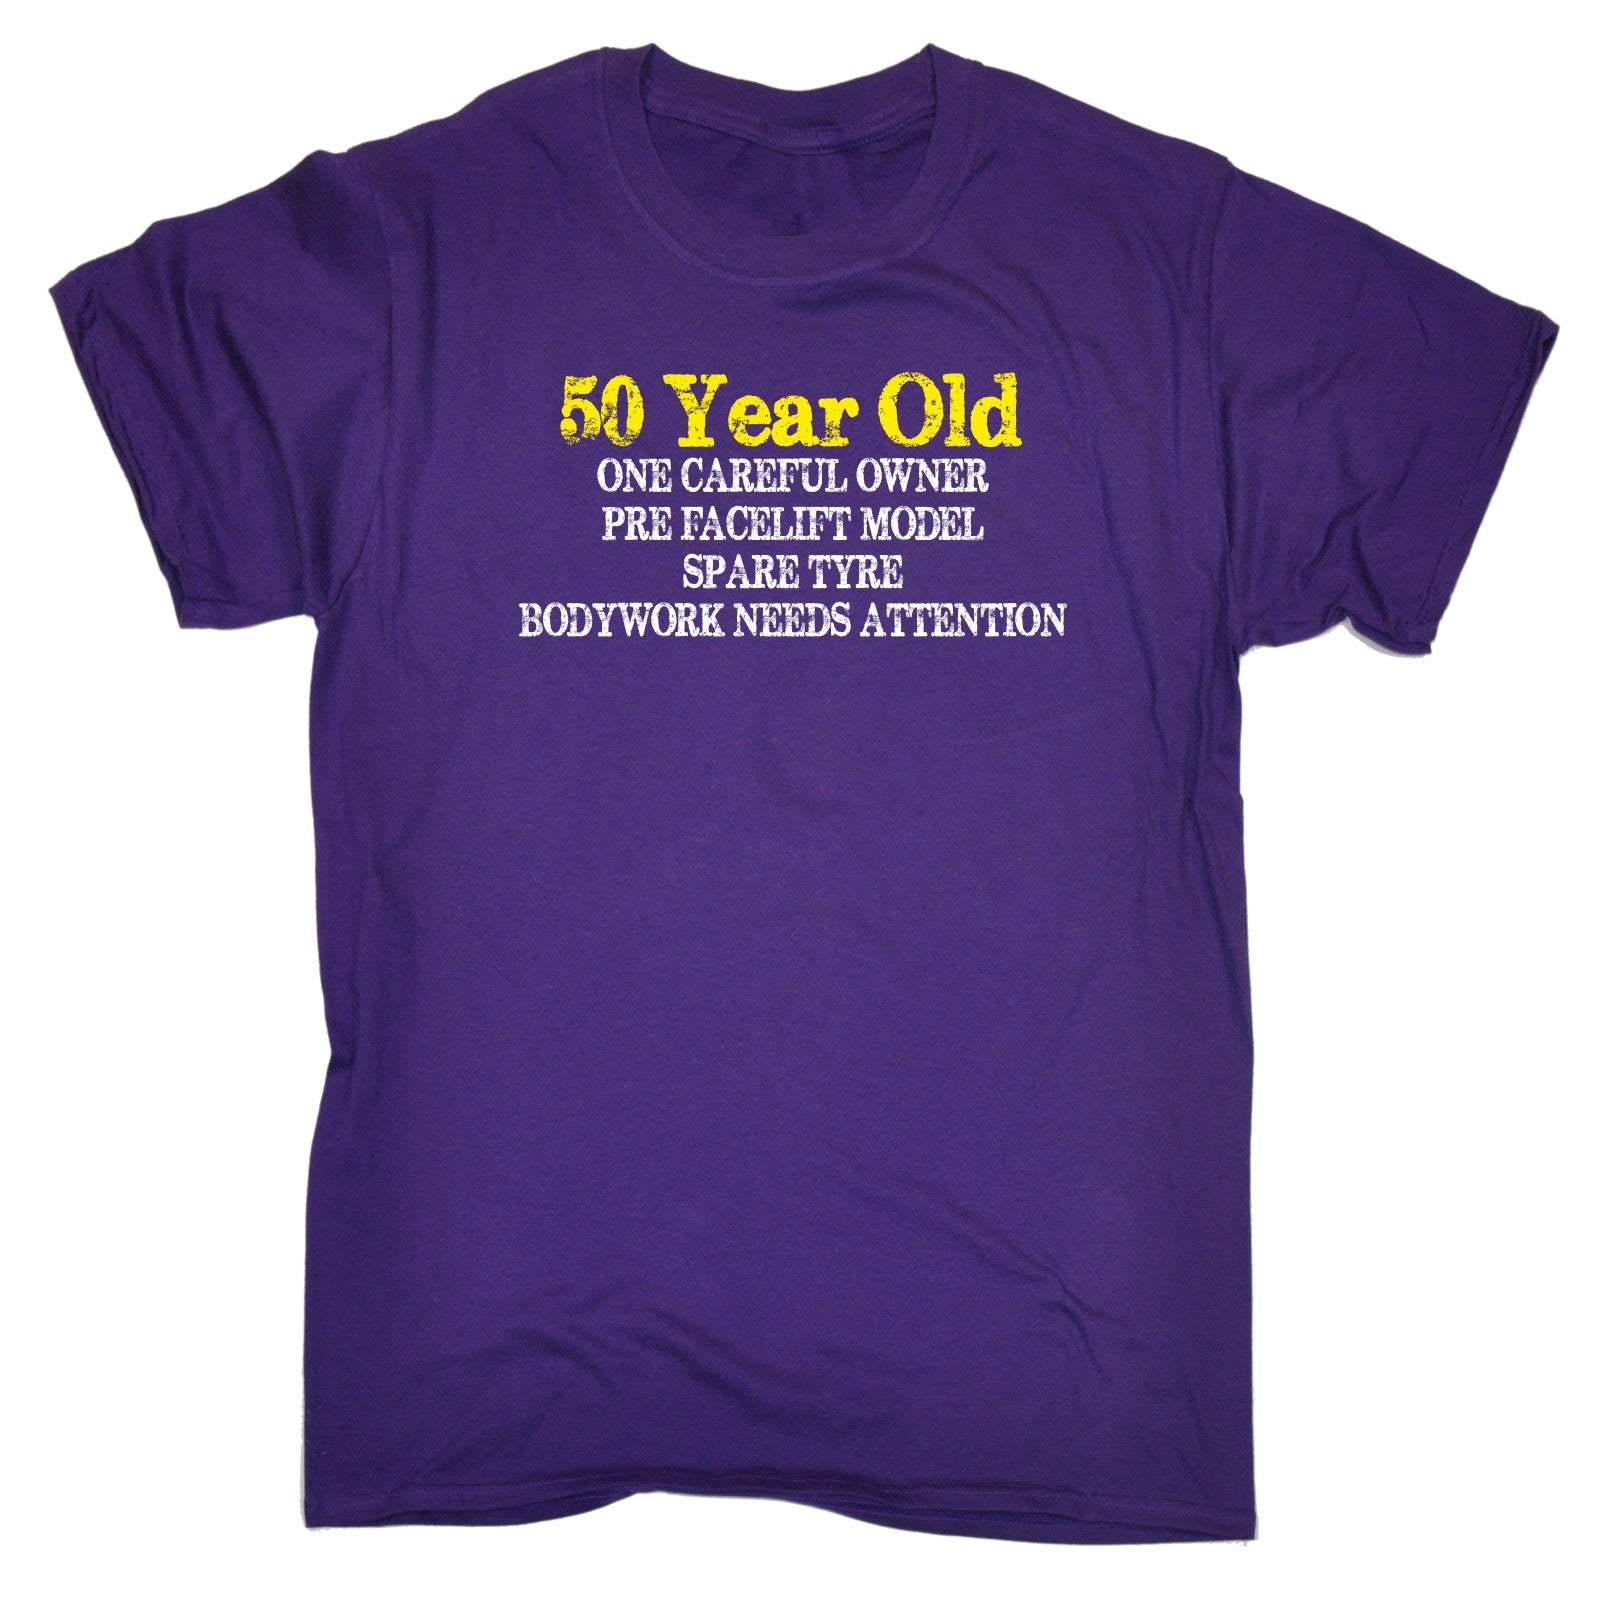 50 YEAR OLD ONE CAREFUL OWNER T SHIRT